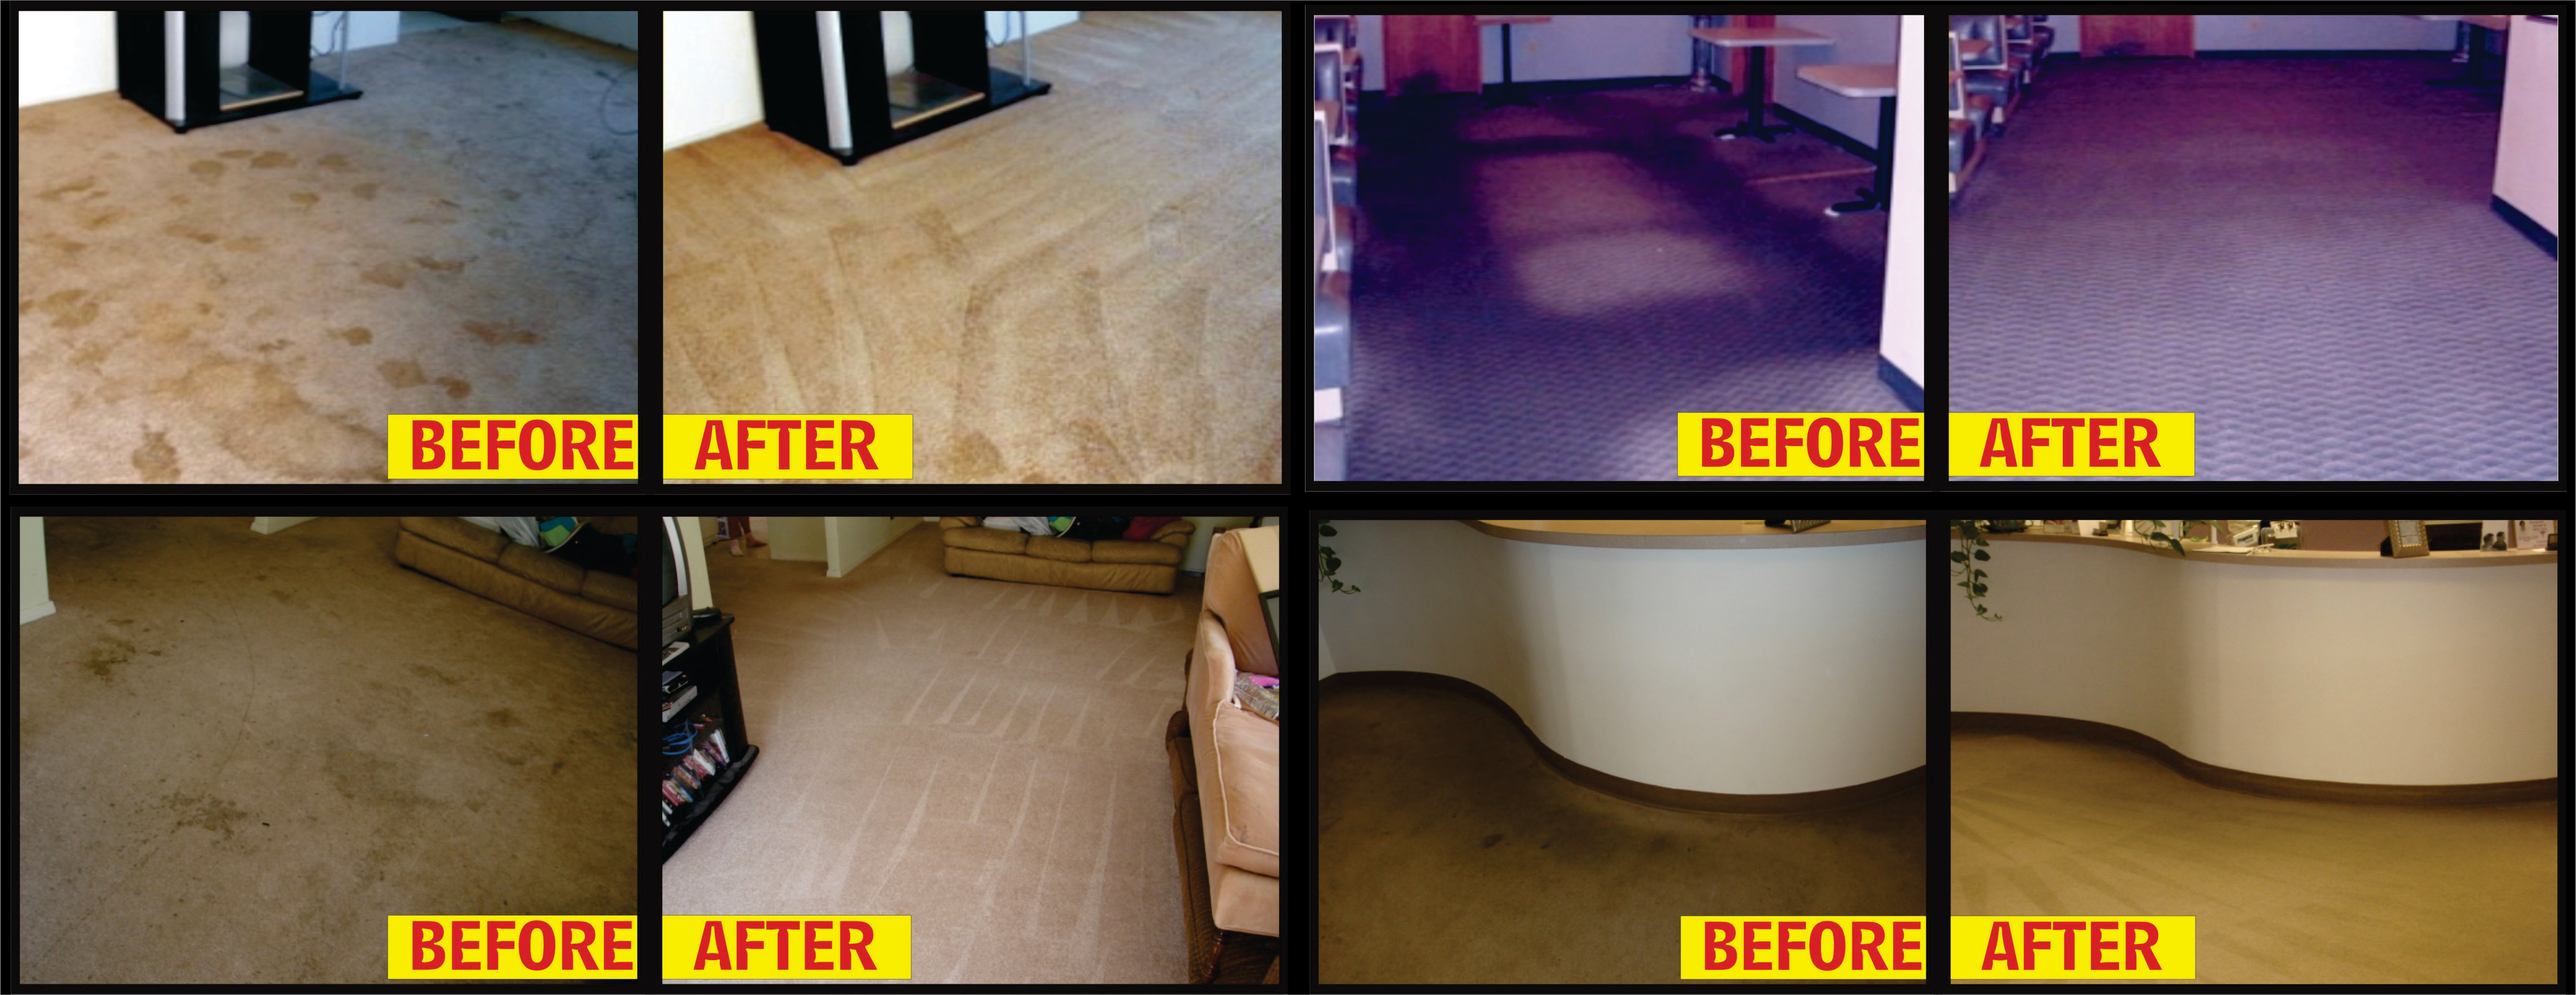 Carpet Cleaning Tile Grout Cleaning Carpet Cleaner